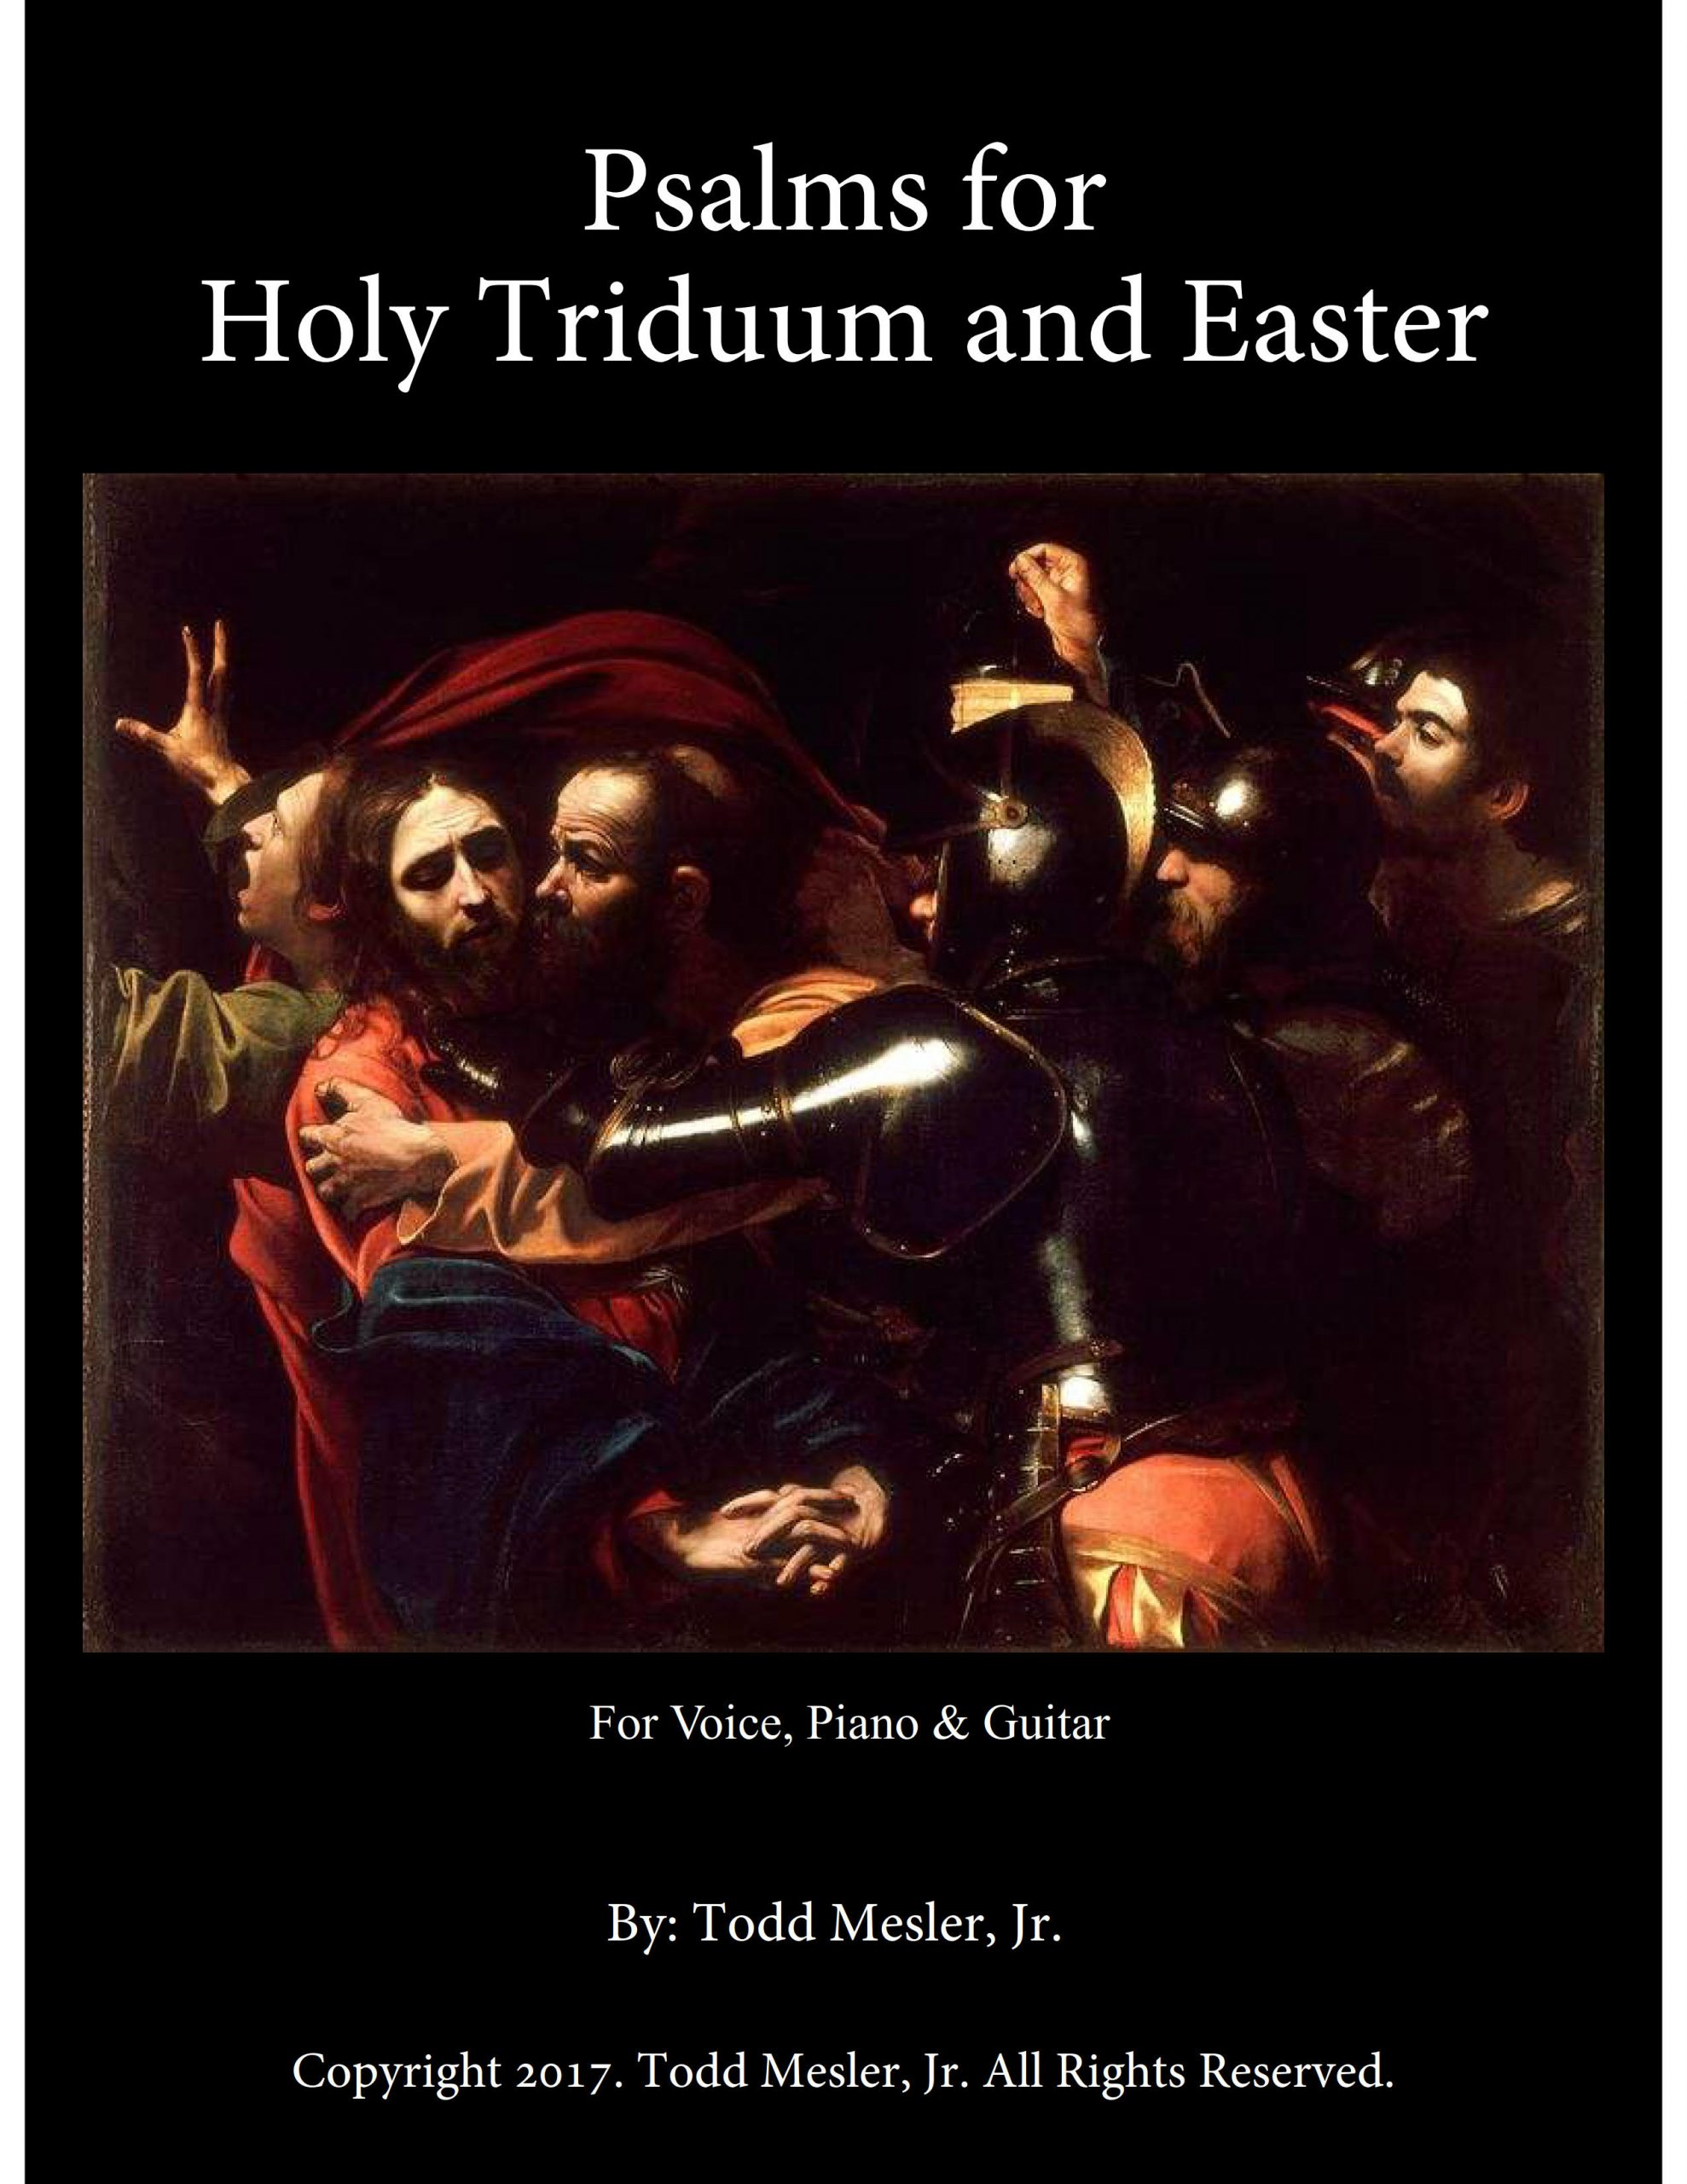 Psalm for Holy Triduum and Easter Sunday Mesler Sample scaled